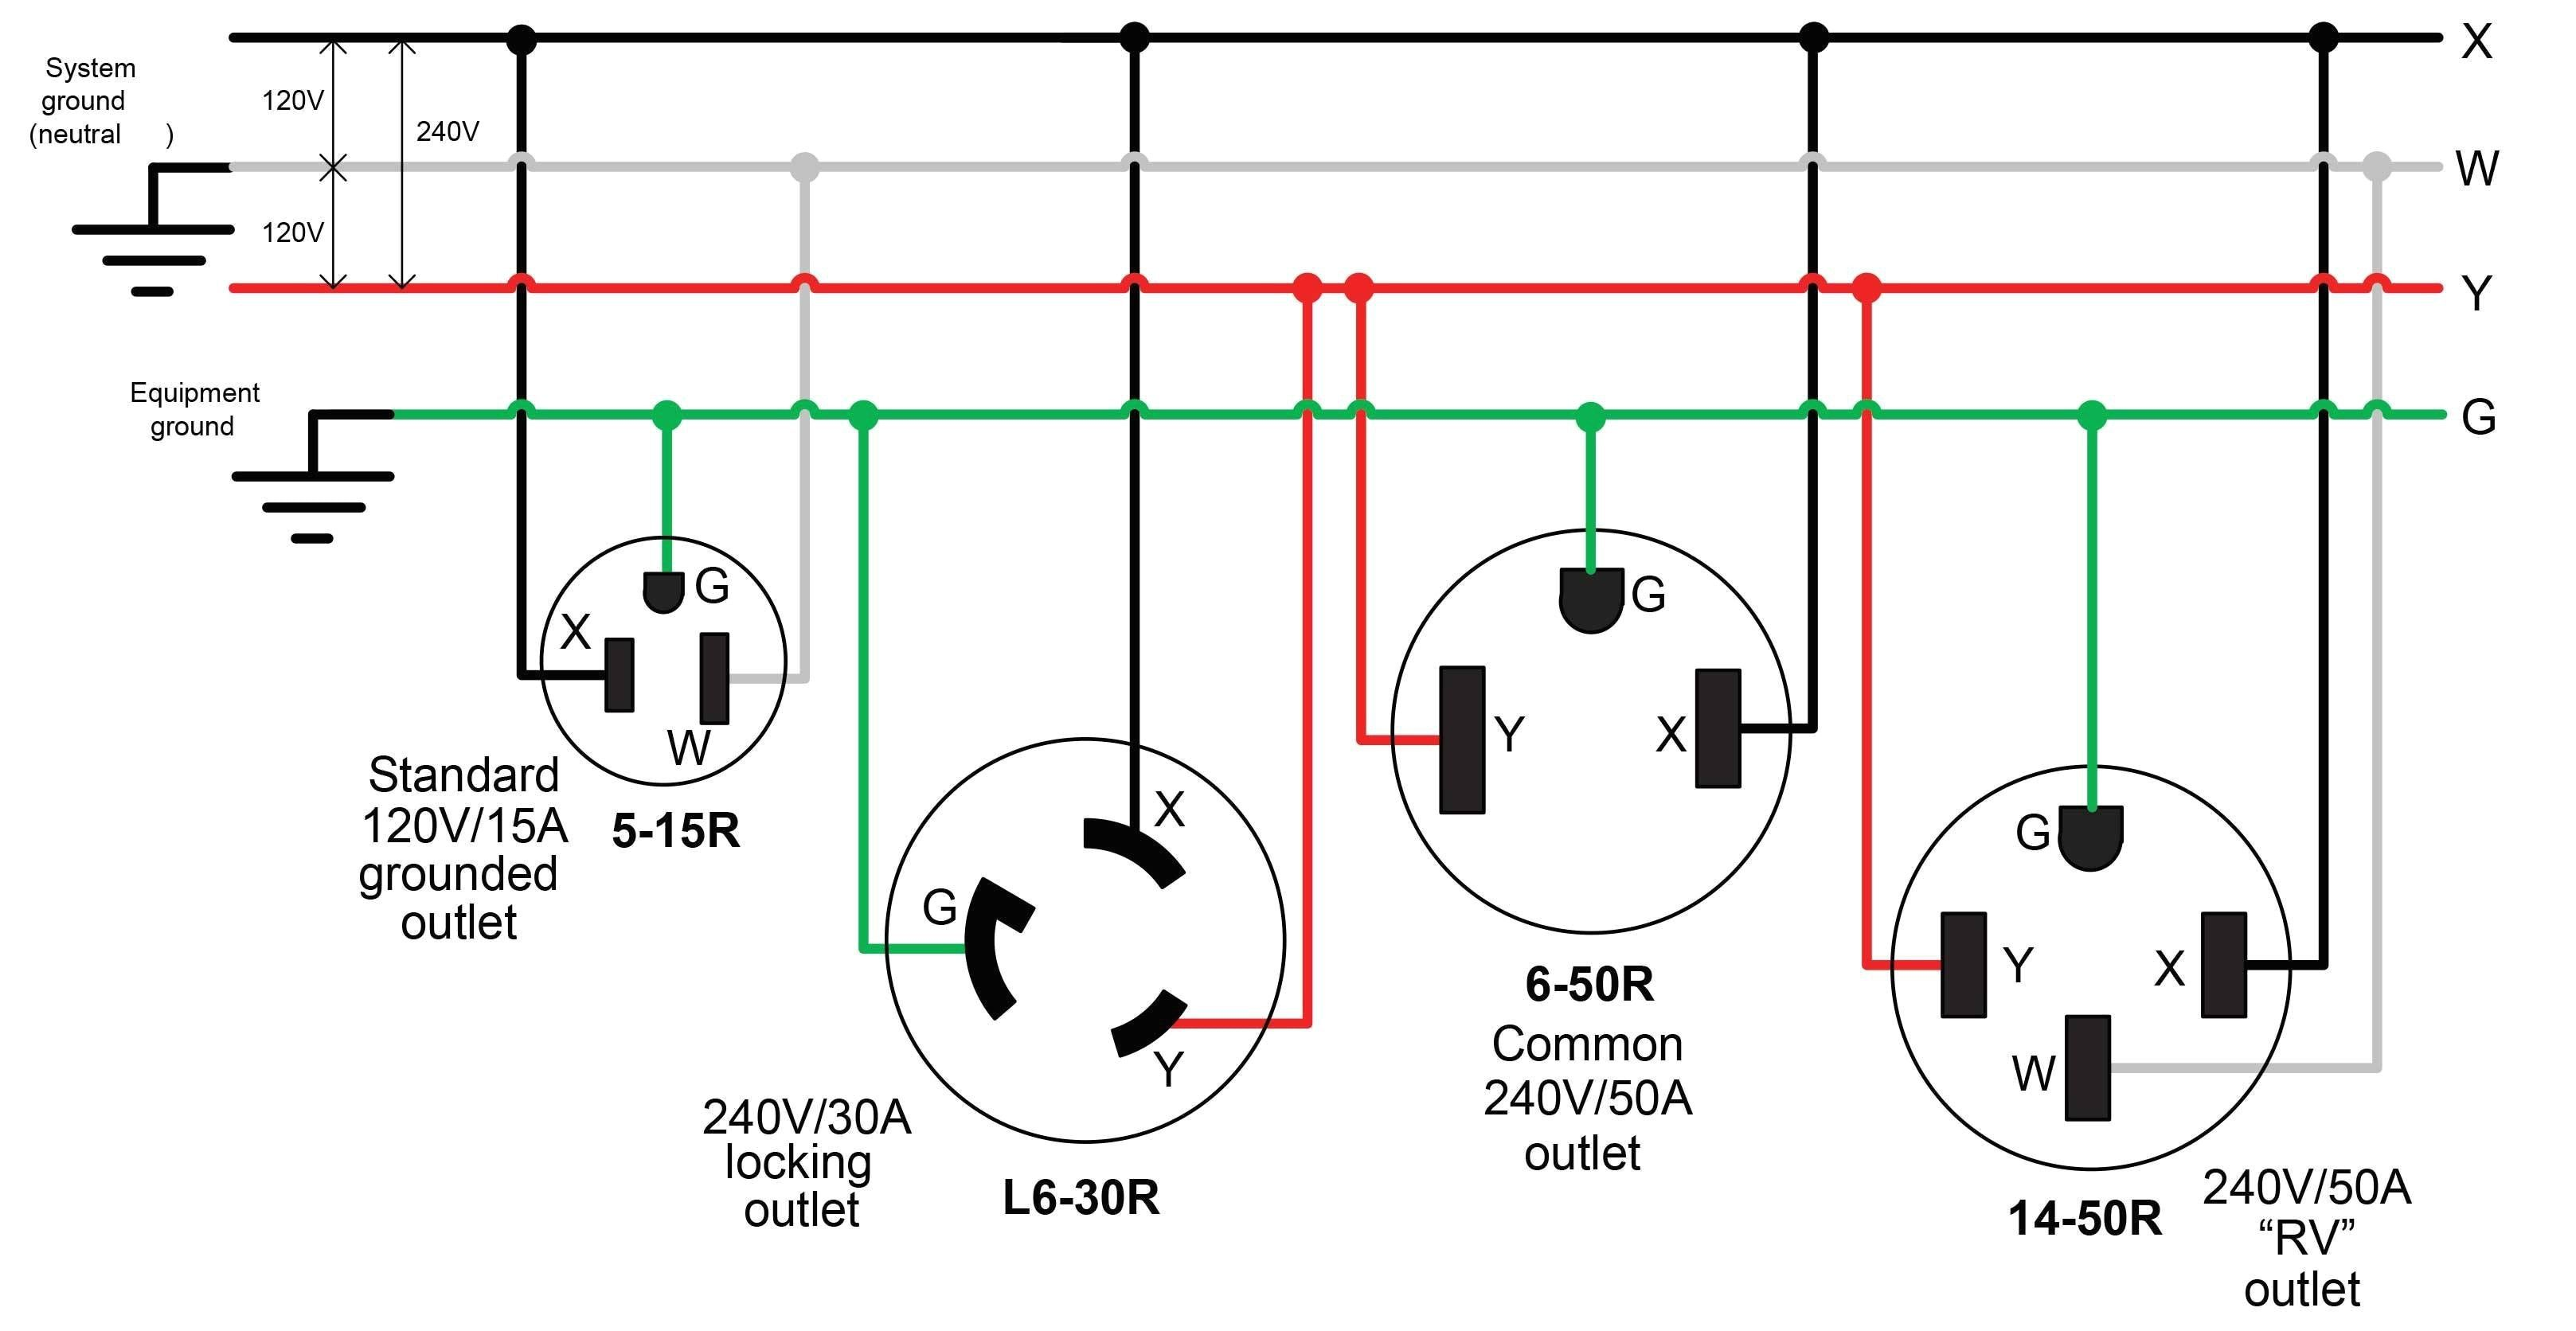 New 4 Prong Twist Lock Plug Wiring Diagram Diagram | Electrical plug wiring,  Outlet wiring, 3 way switch wiringPinterest